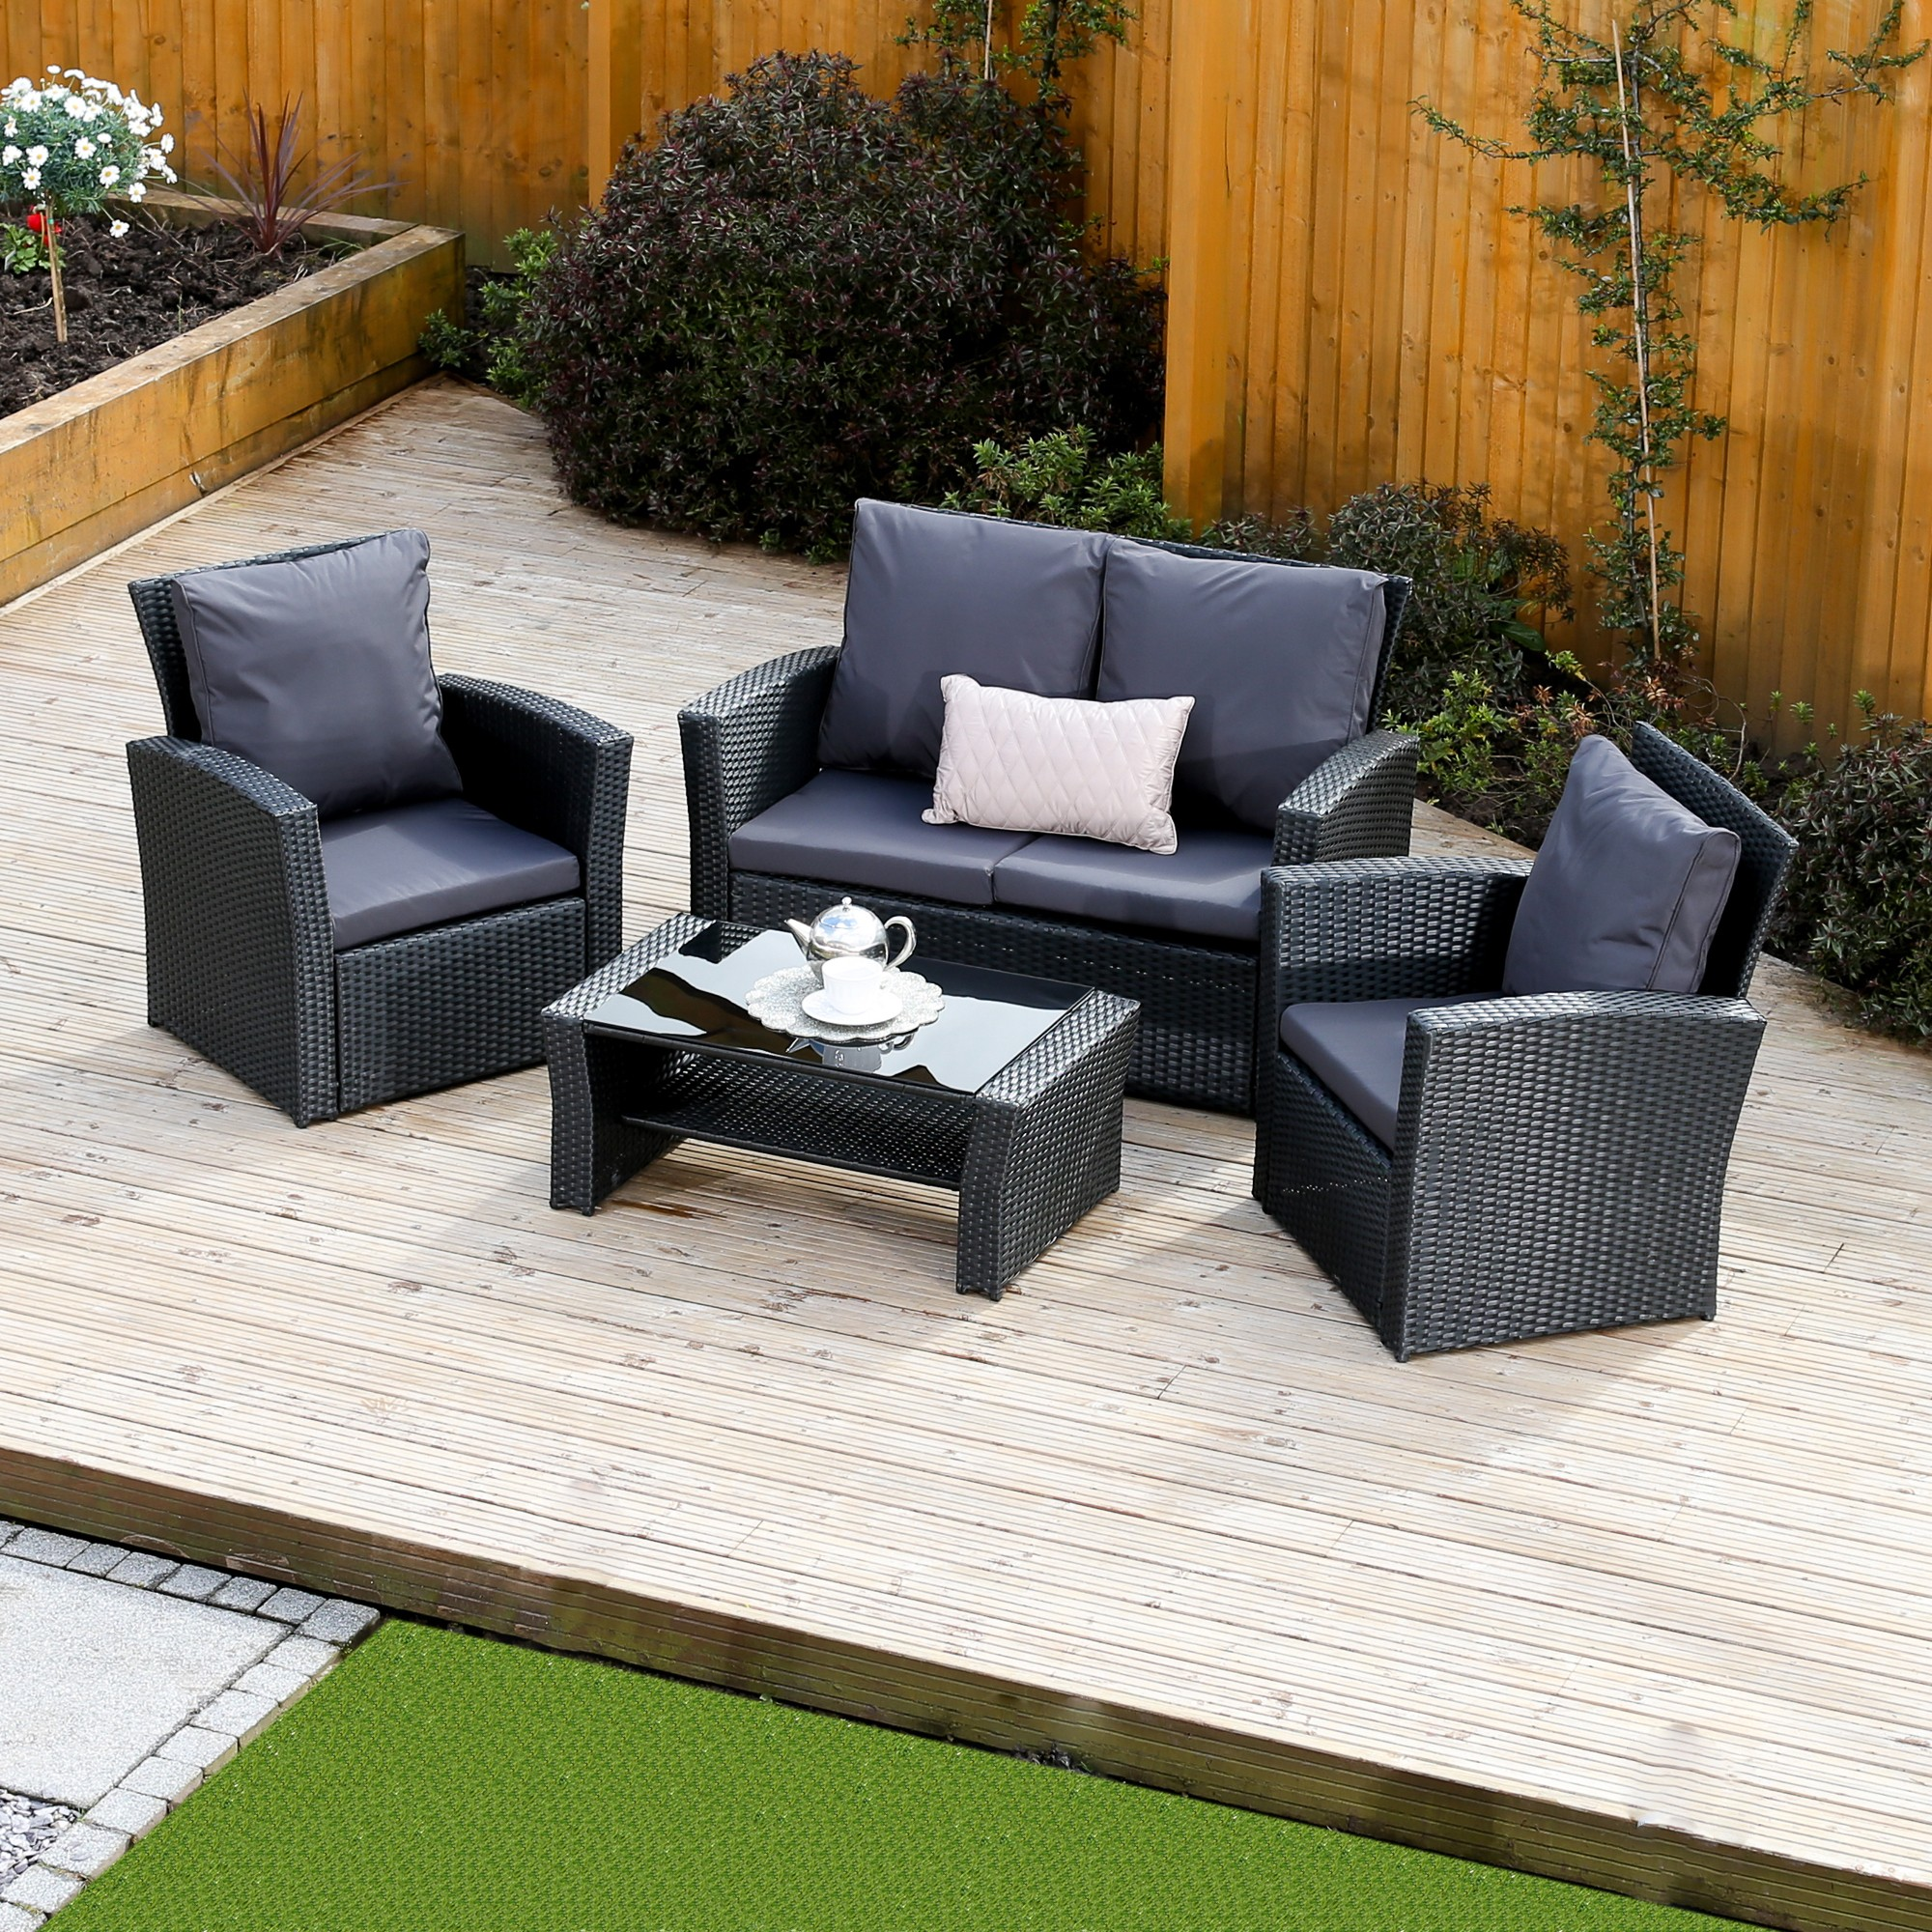 4 piece algarve rattan sofa set for patios conservatories and terraces made from abreo and. Black Bedroom Furniture Sets. Home Design Ideas